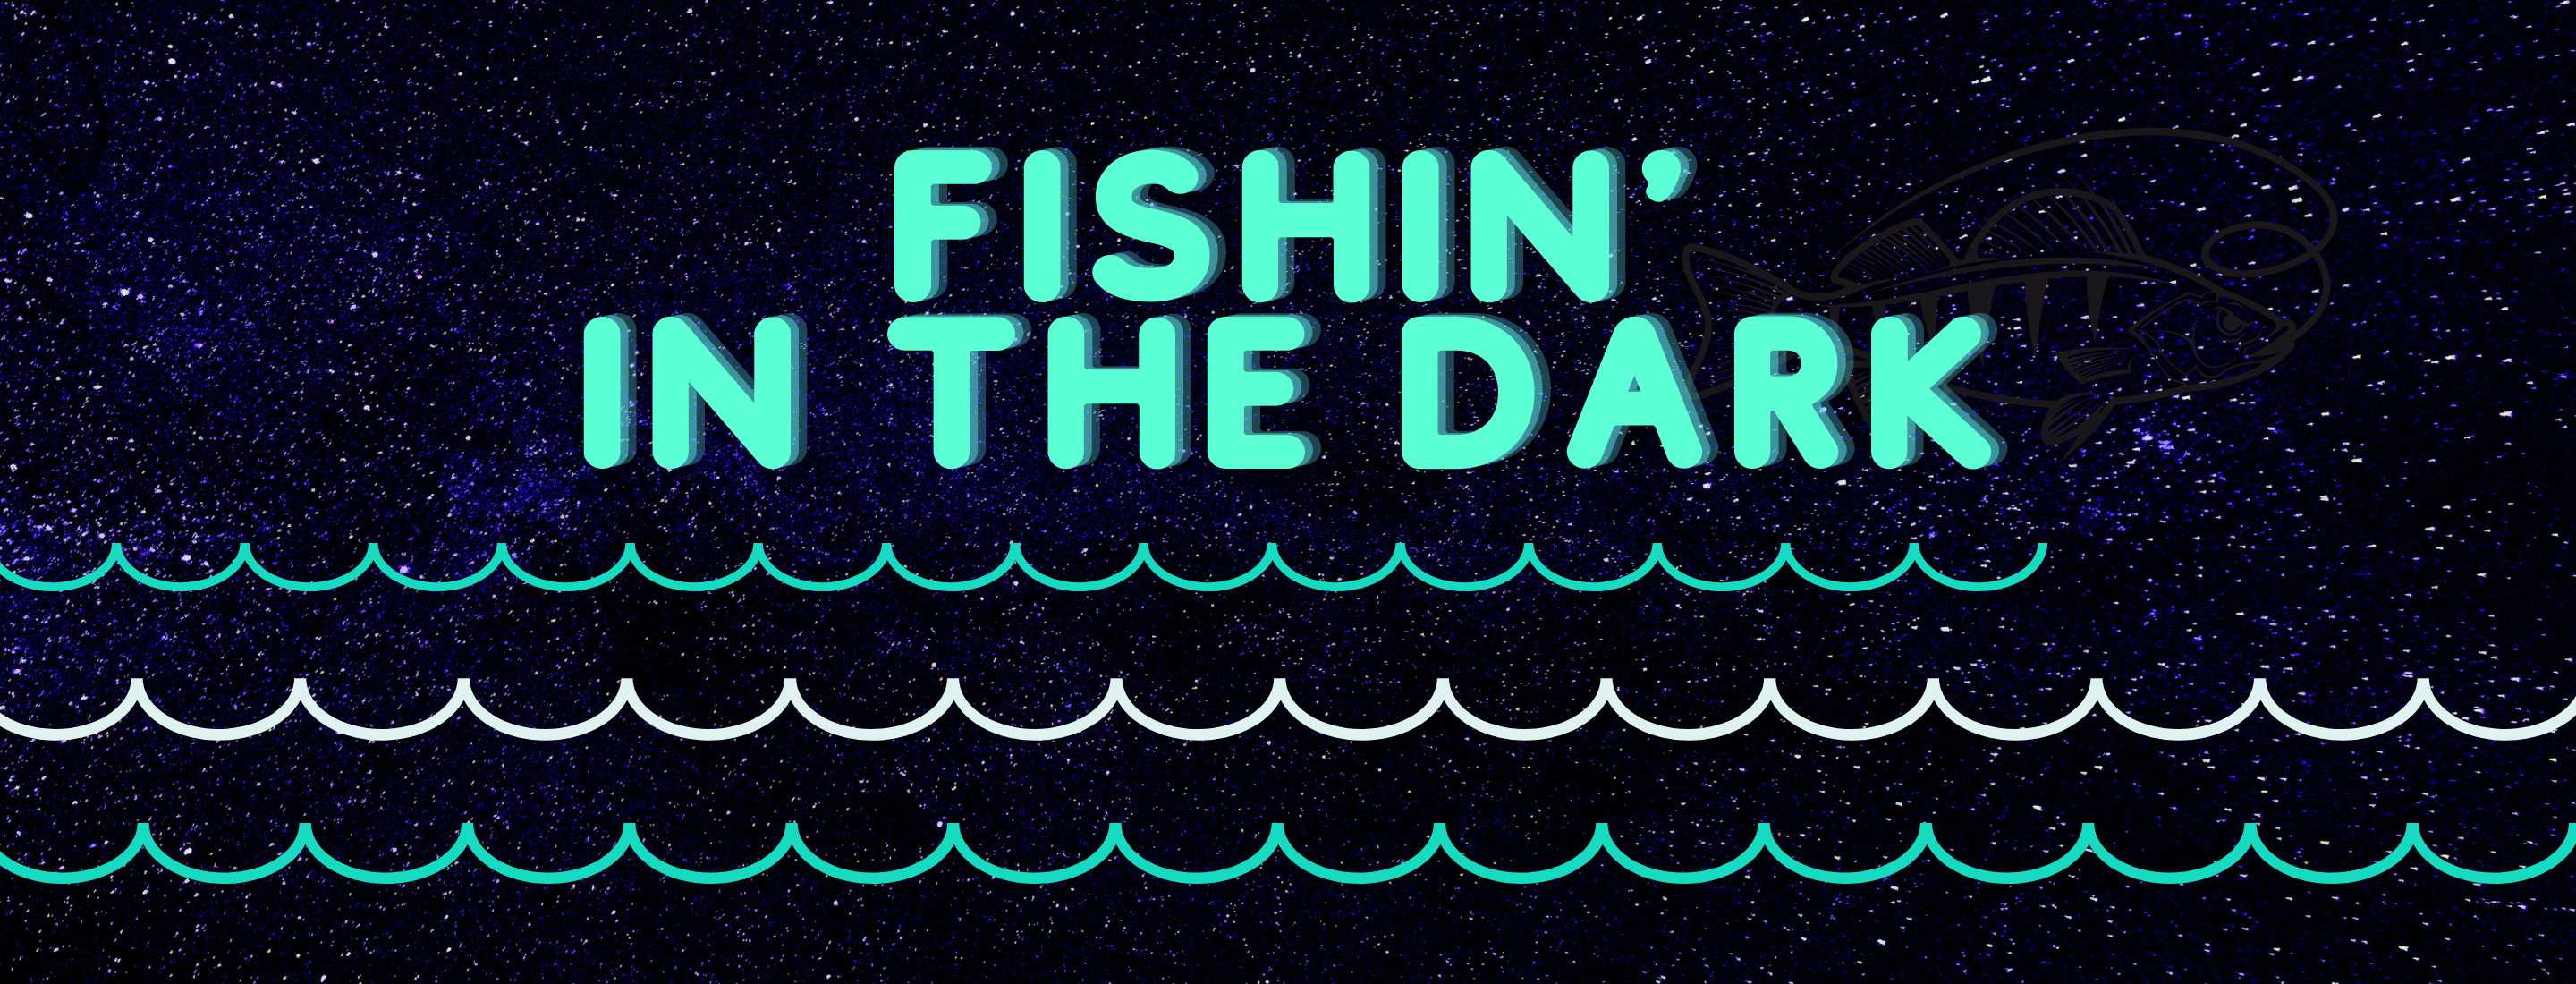 """Graphic design with a black, starry-night background, a bright green font that reads """"Fishin' in the Dark"""", with wave-like designs underneath."""